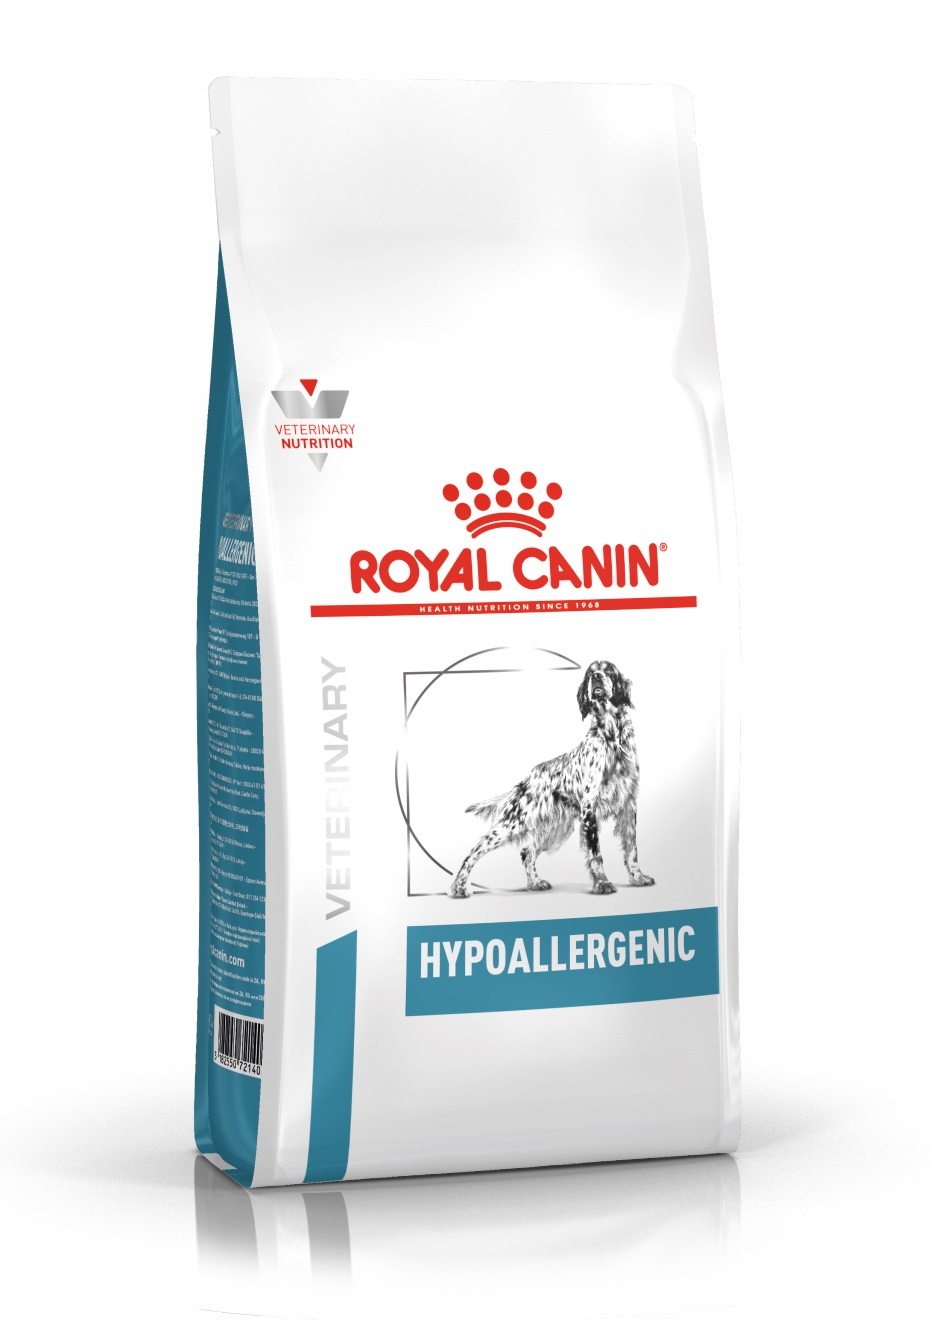 Royal Canin Hypoallergenic Dog Food With Food Allergies, 14 Kg